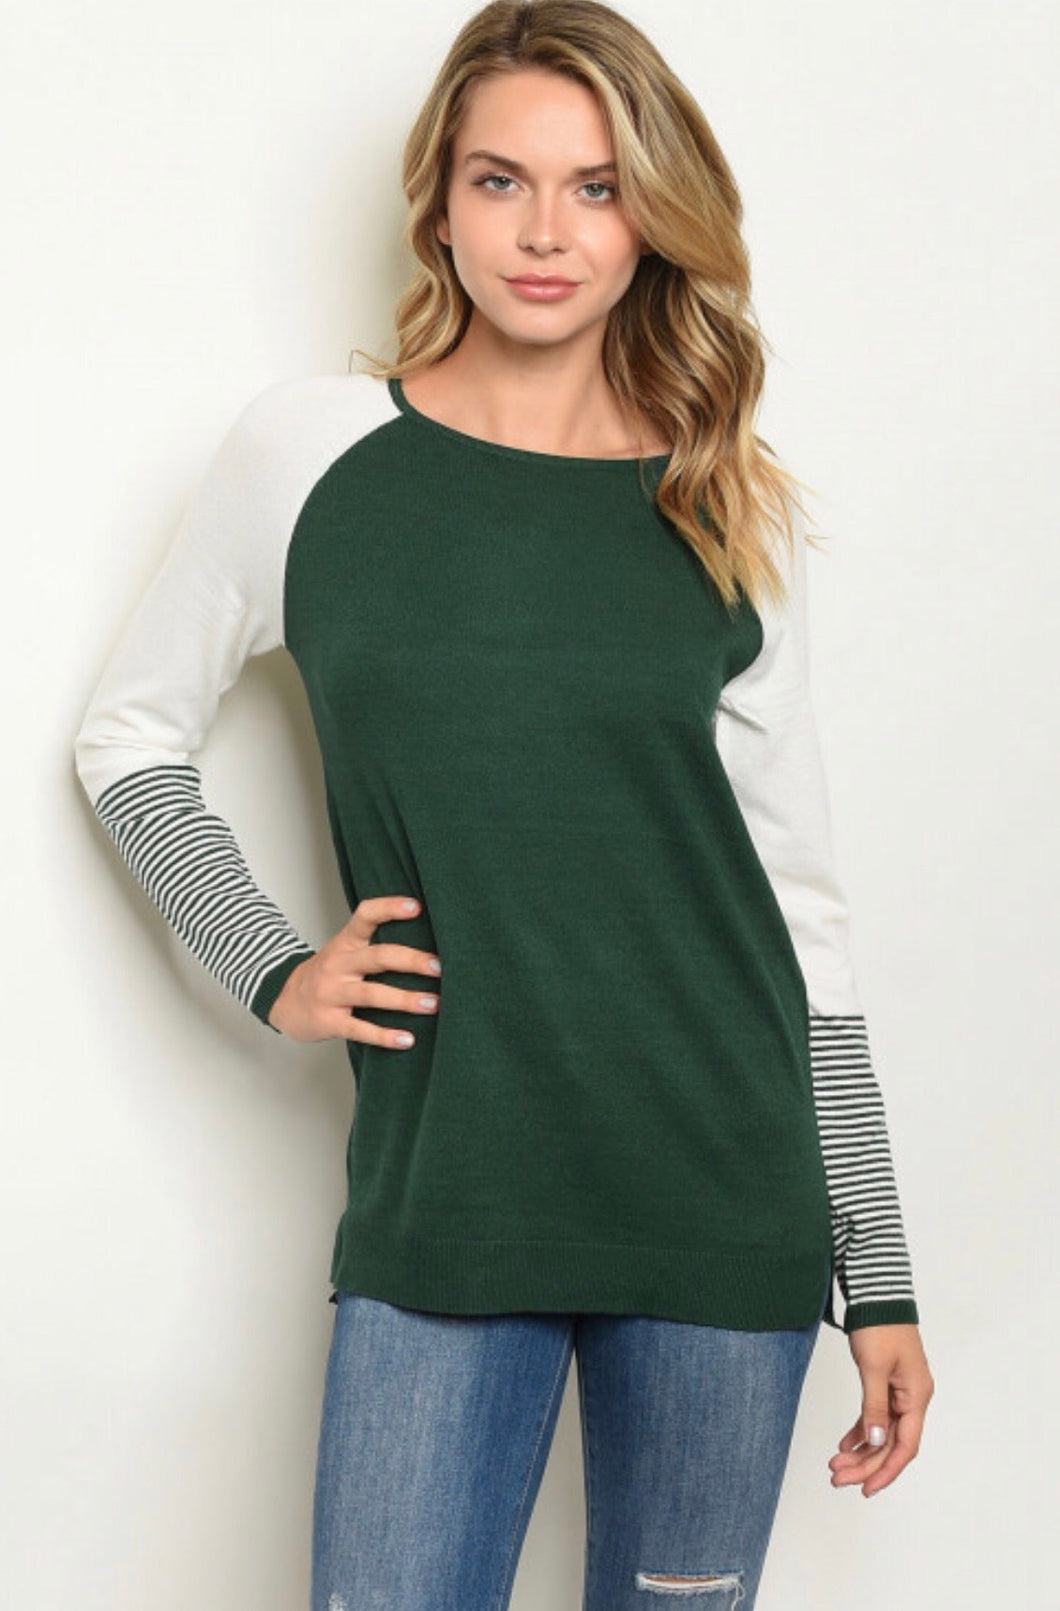 Into The Woods Sweater - Green - Latitudes Boutique